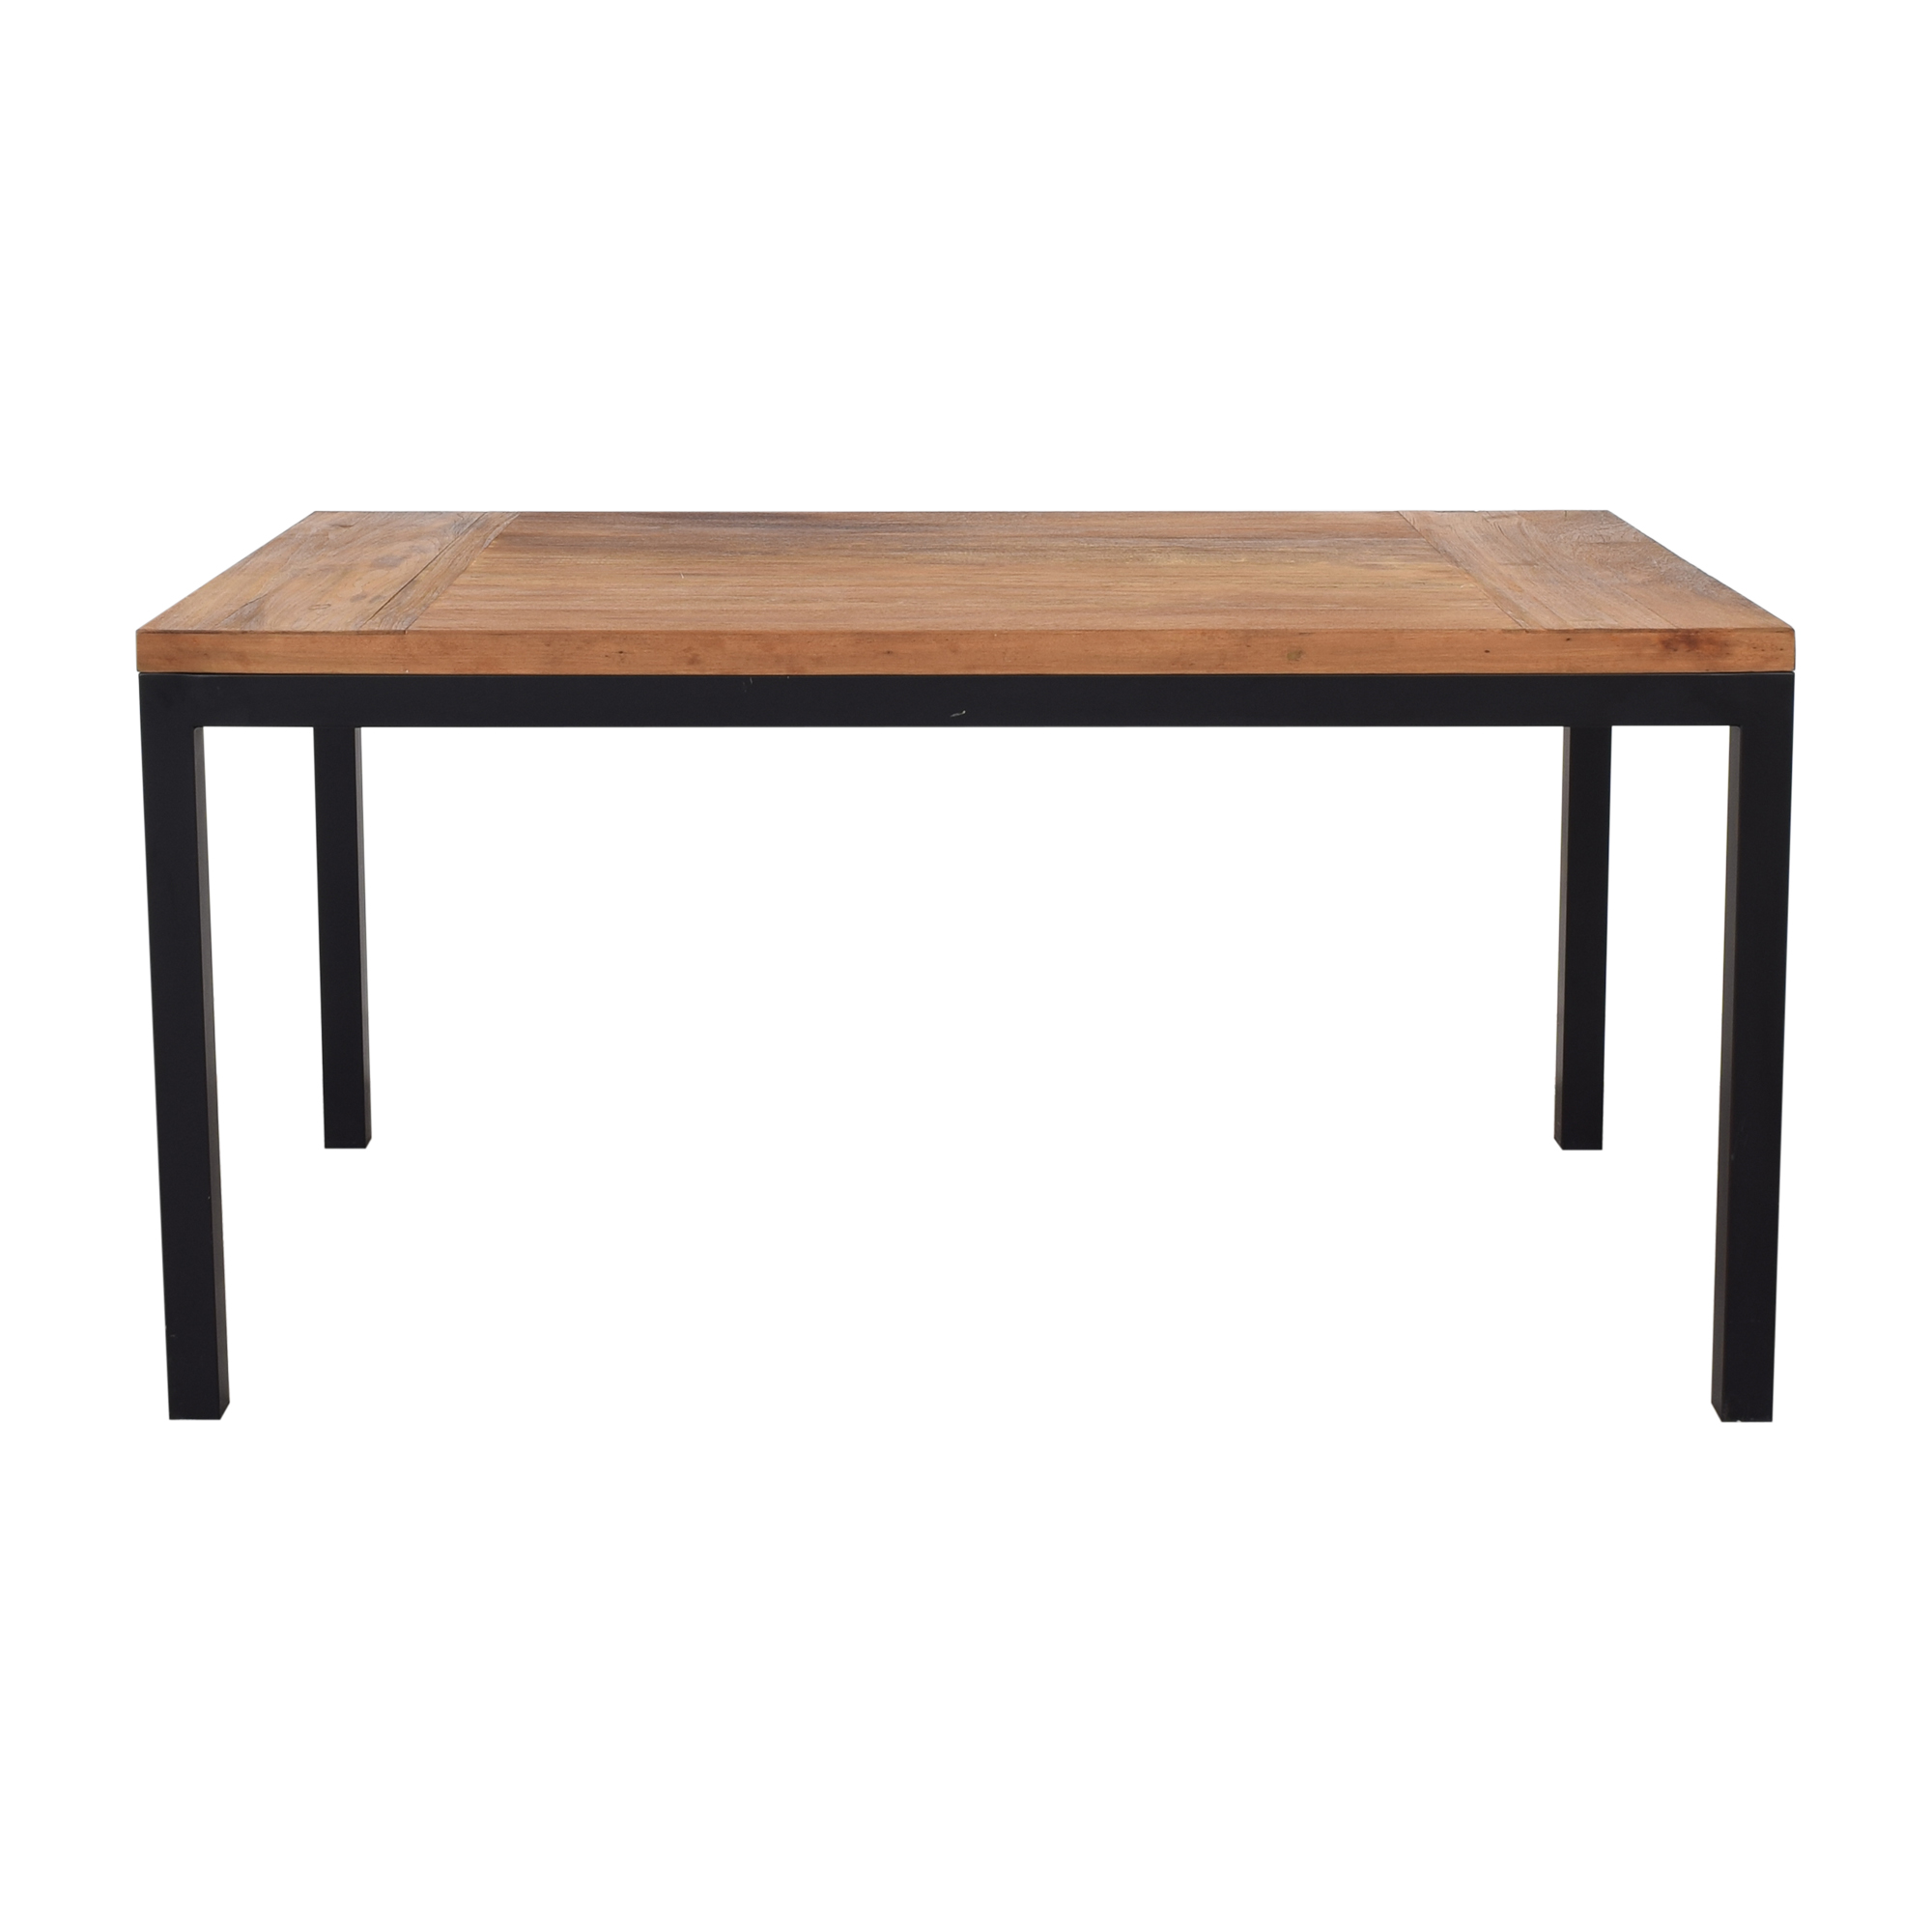 Crate & Barrel Crate & Barrel Parsons Dining Table Dinner Tables